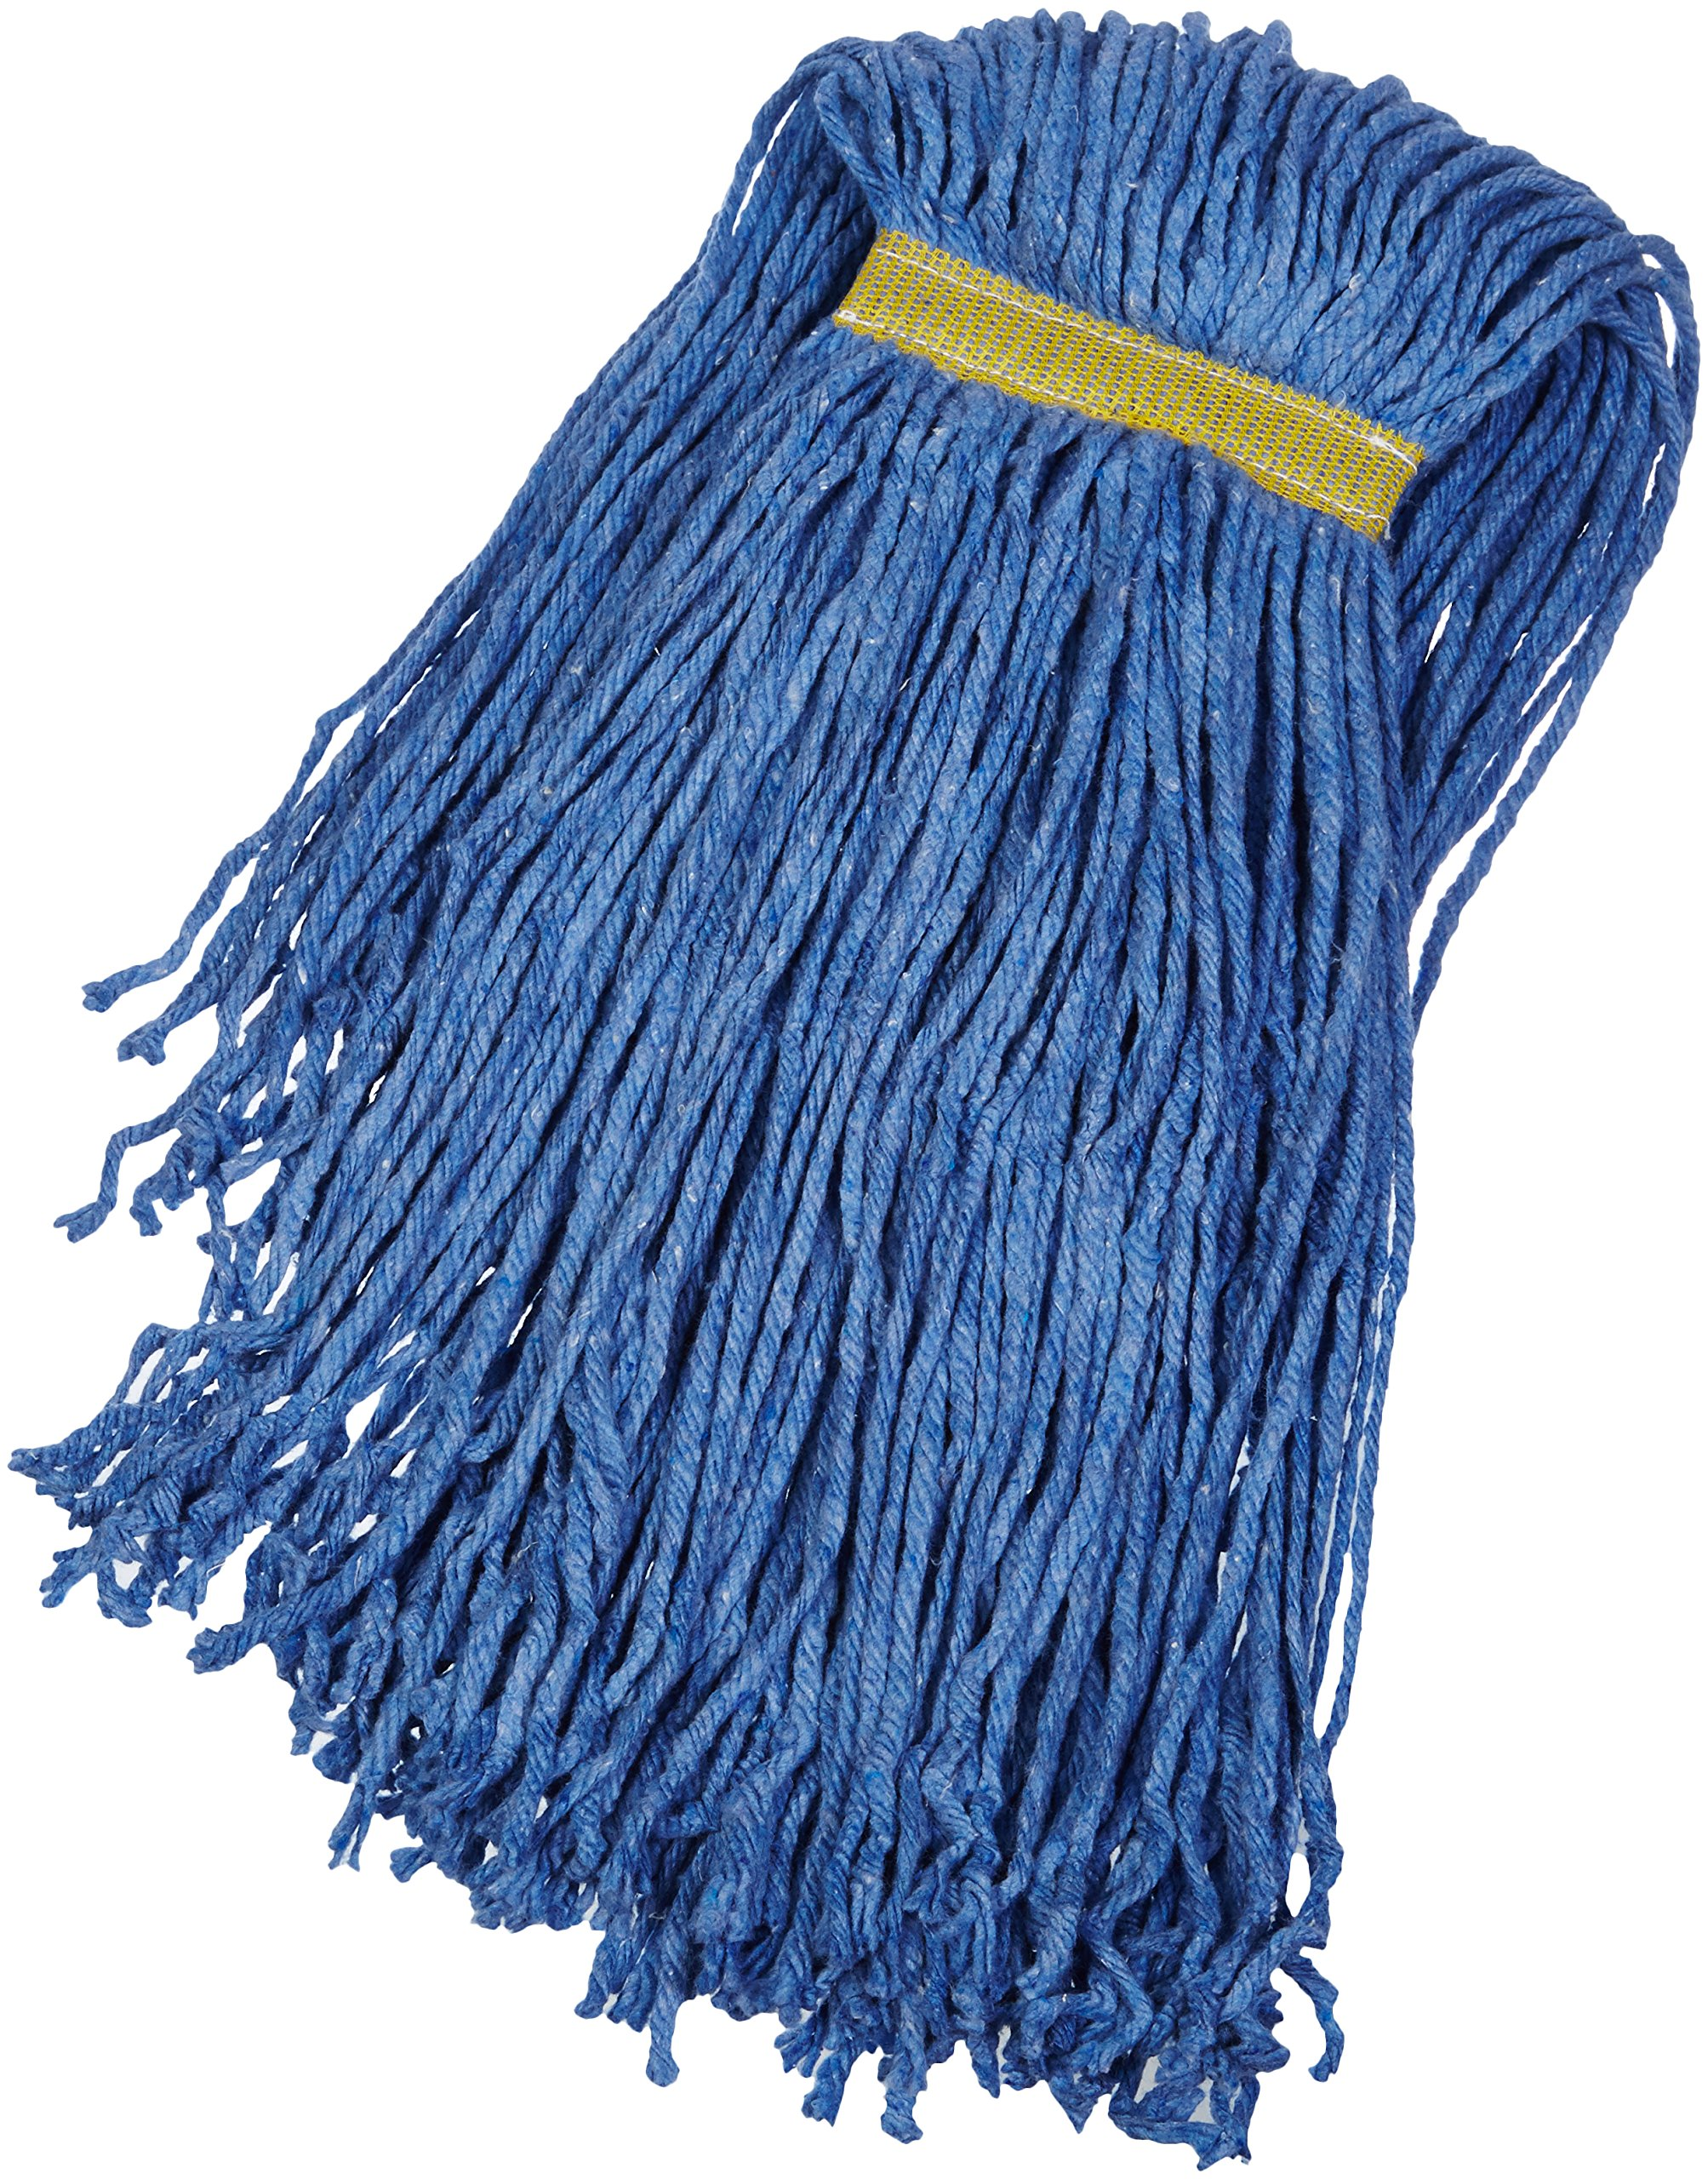 AmazonBasics Cut-End Cotton Commercial String Mop Head, 1.25 Inch Headband, Large, Blue, 6-Pack by AmazonBasics